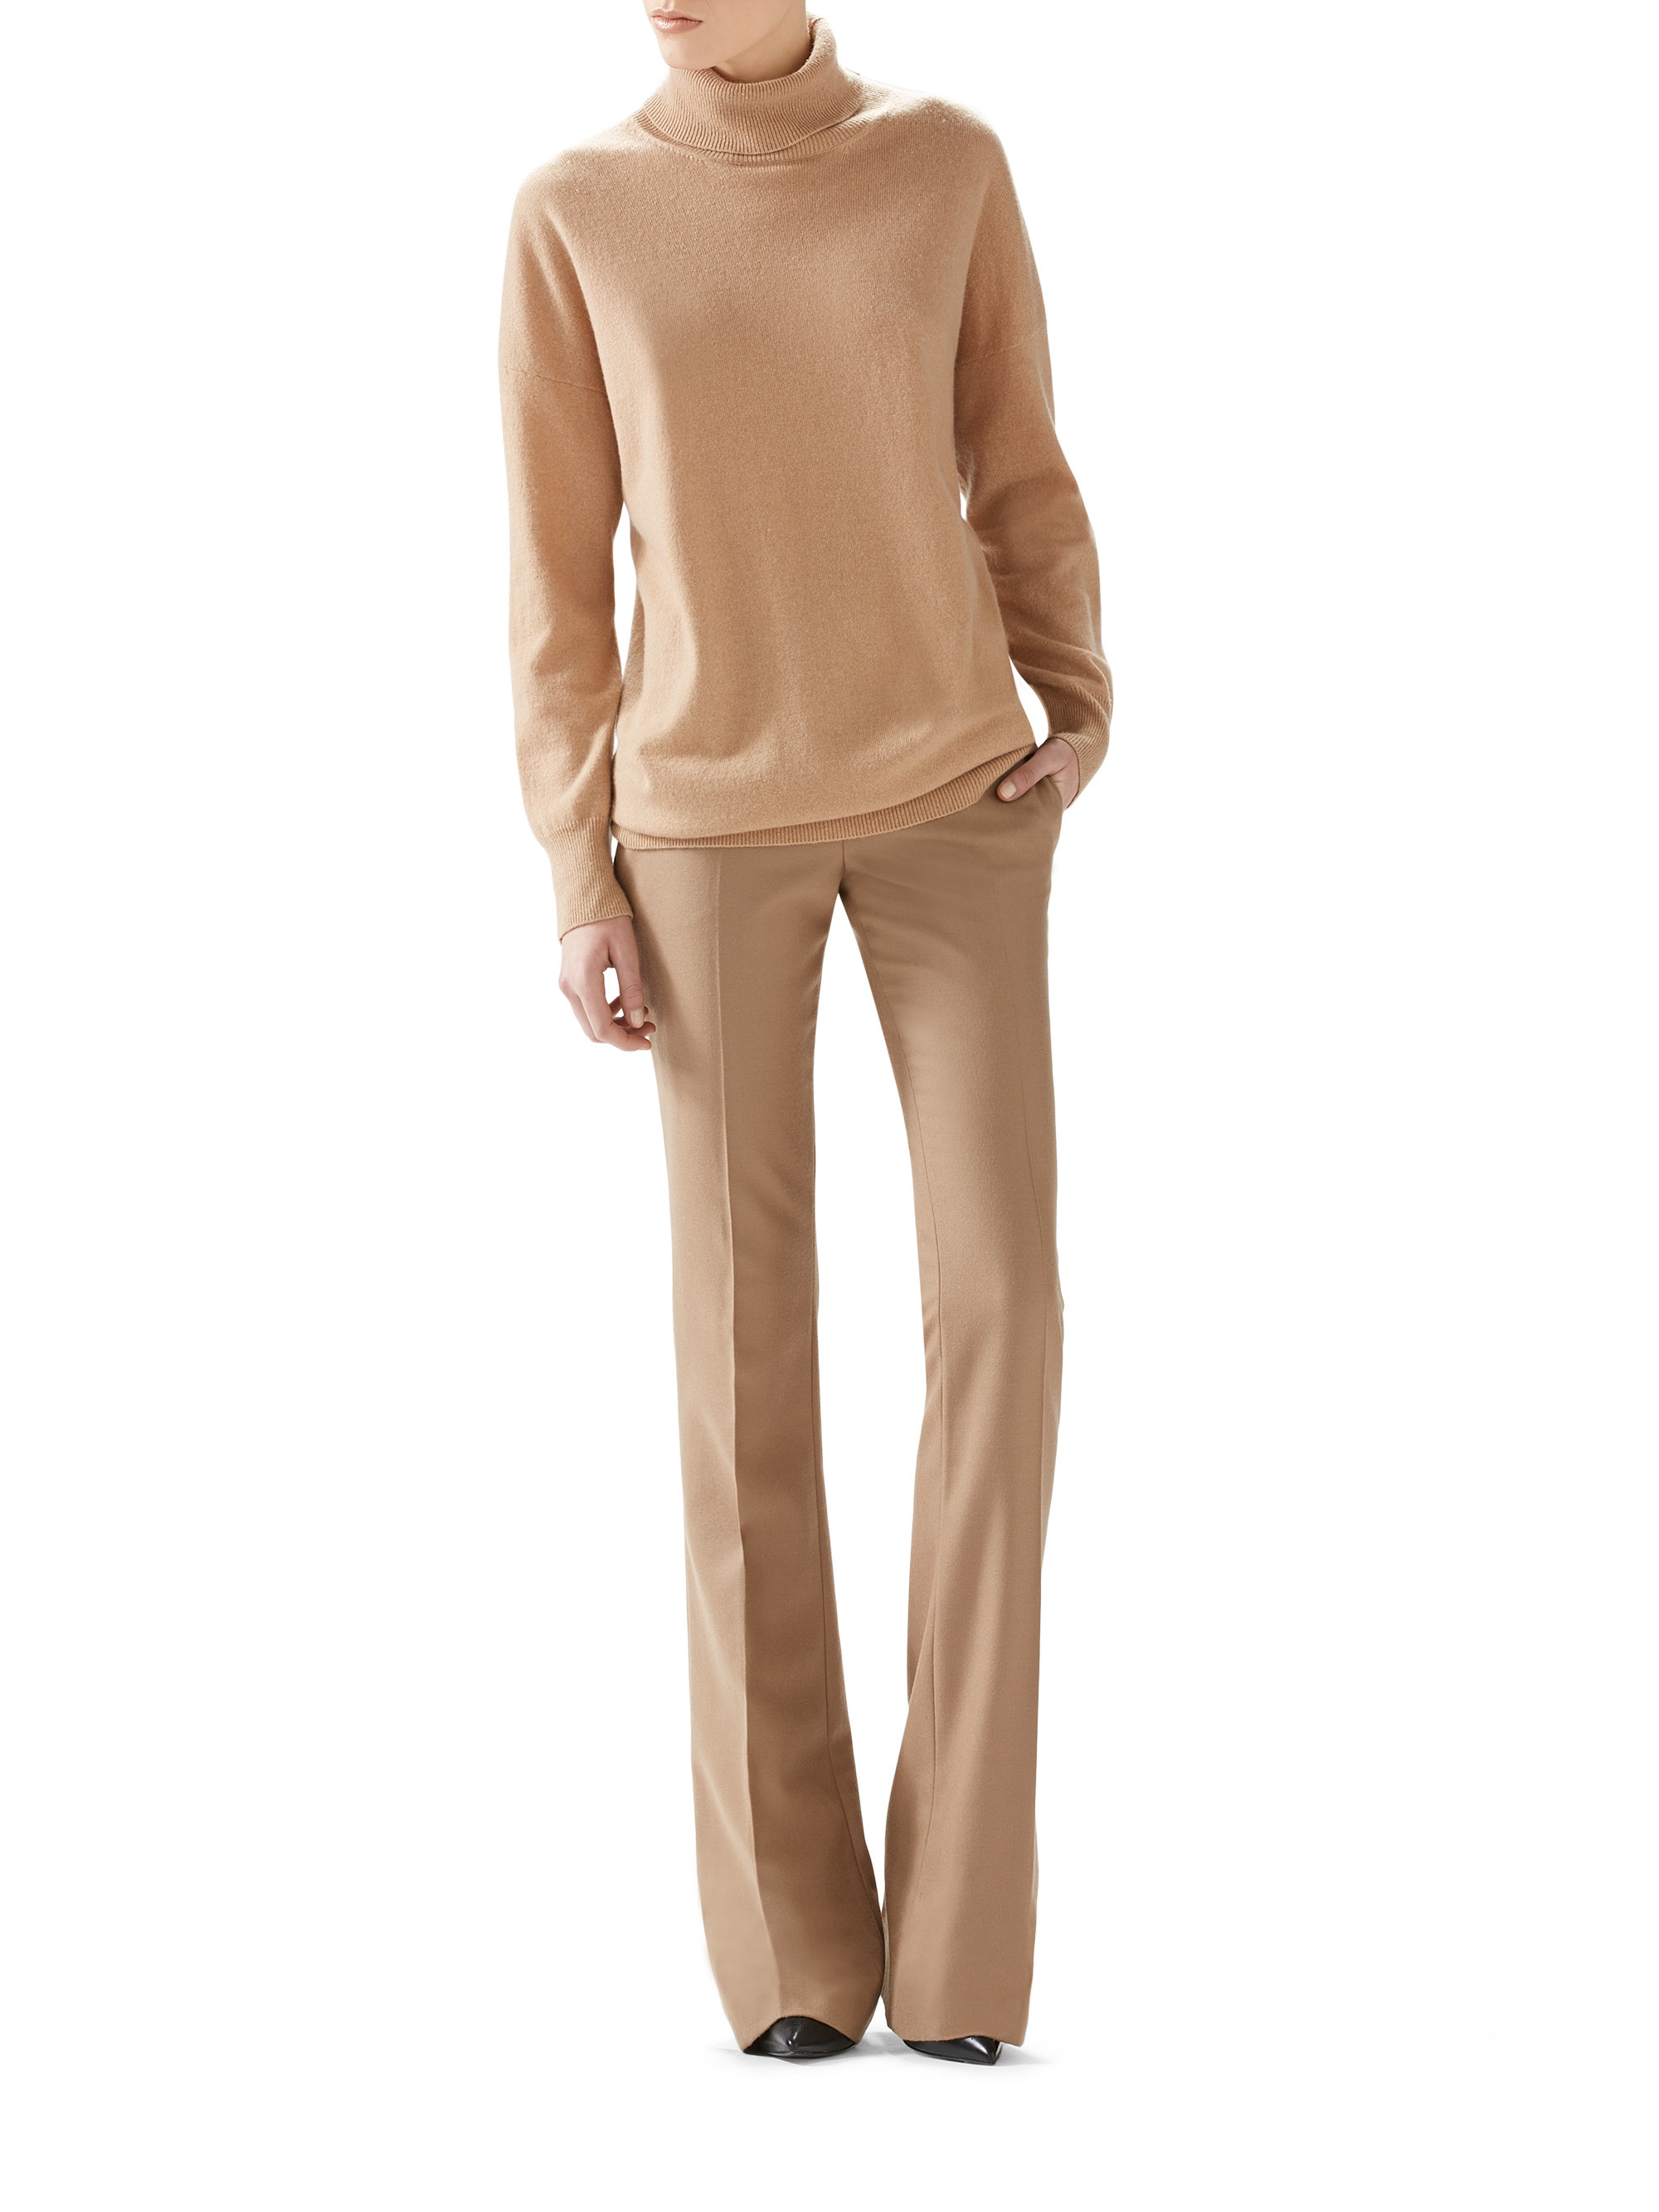 Gucci Oversized Cashmere Turtleneck Sweater in Natural | Lyst